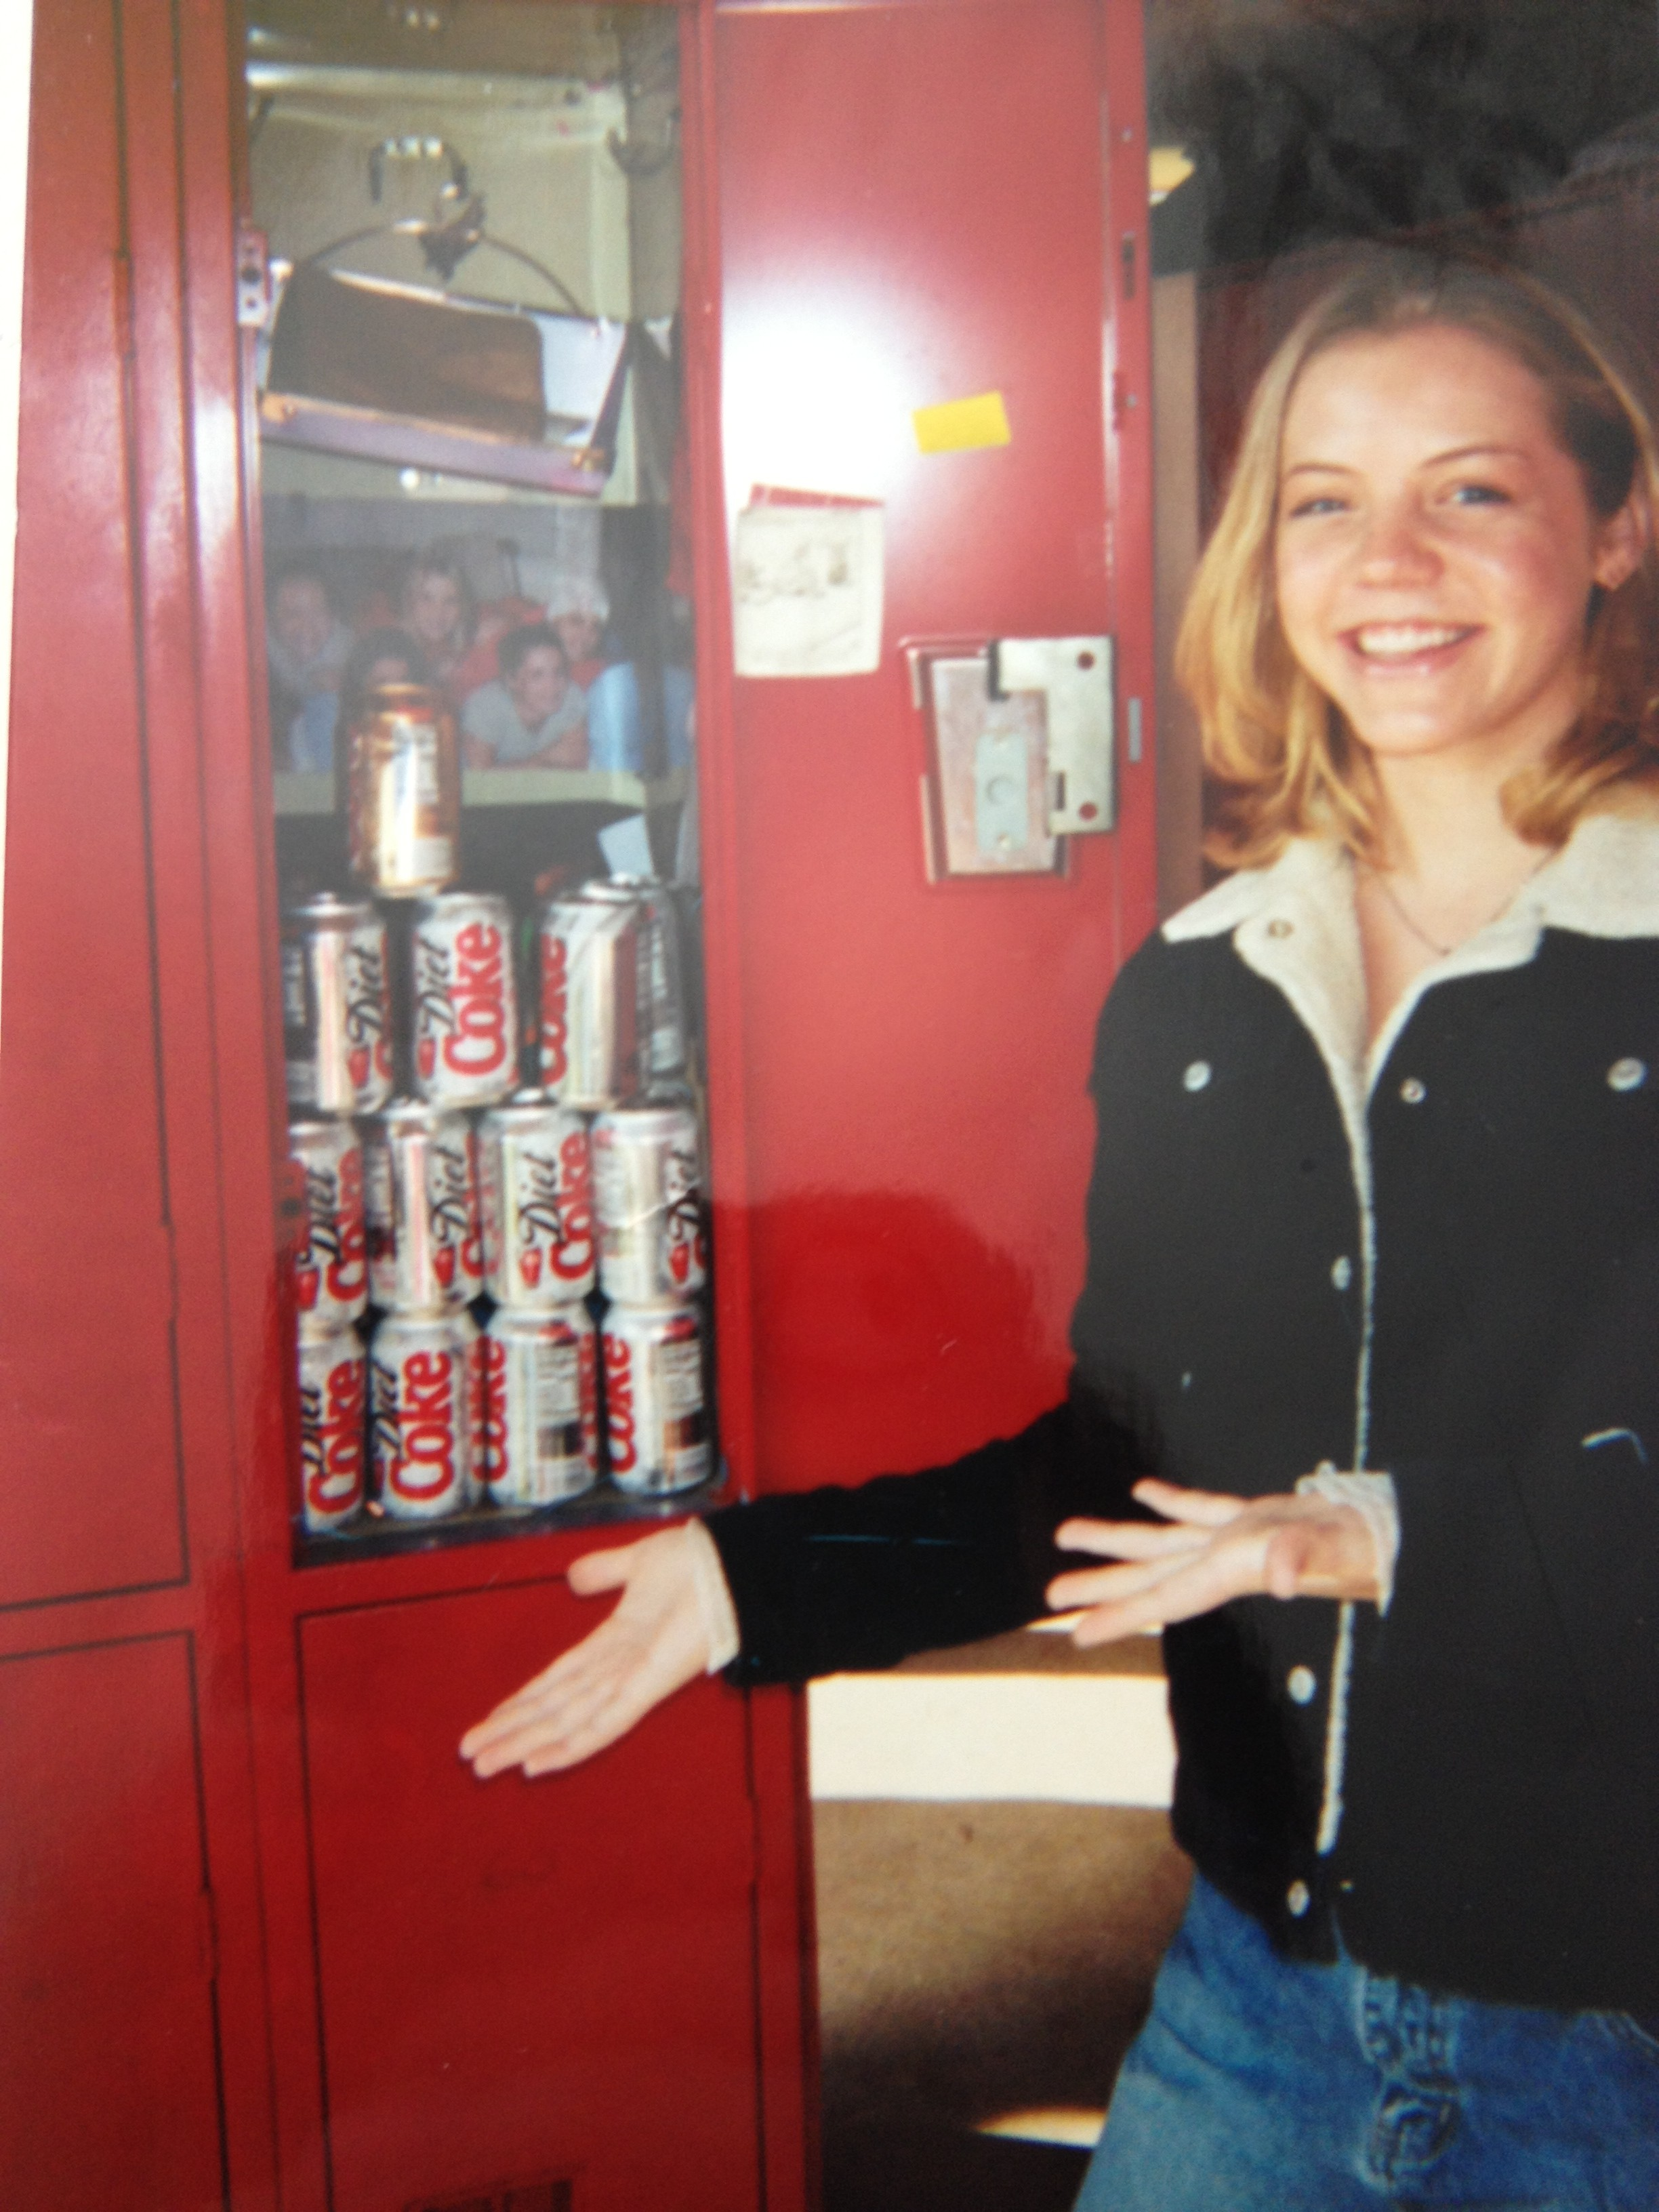 Diet Coke in a locker